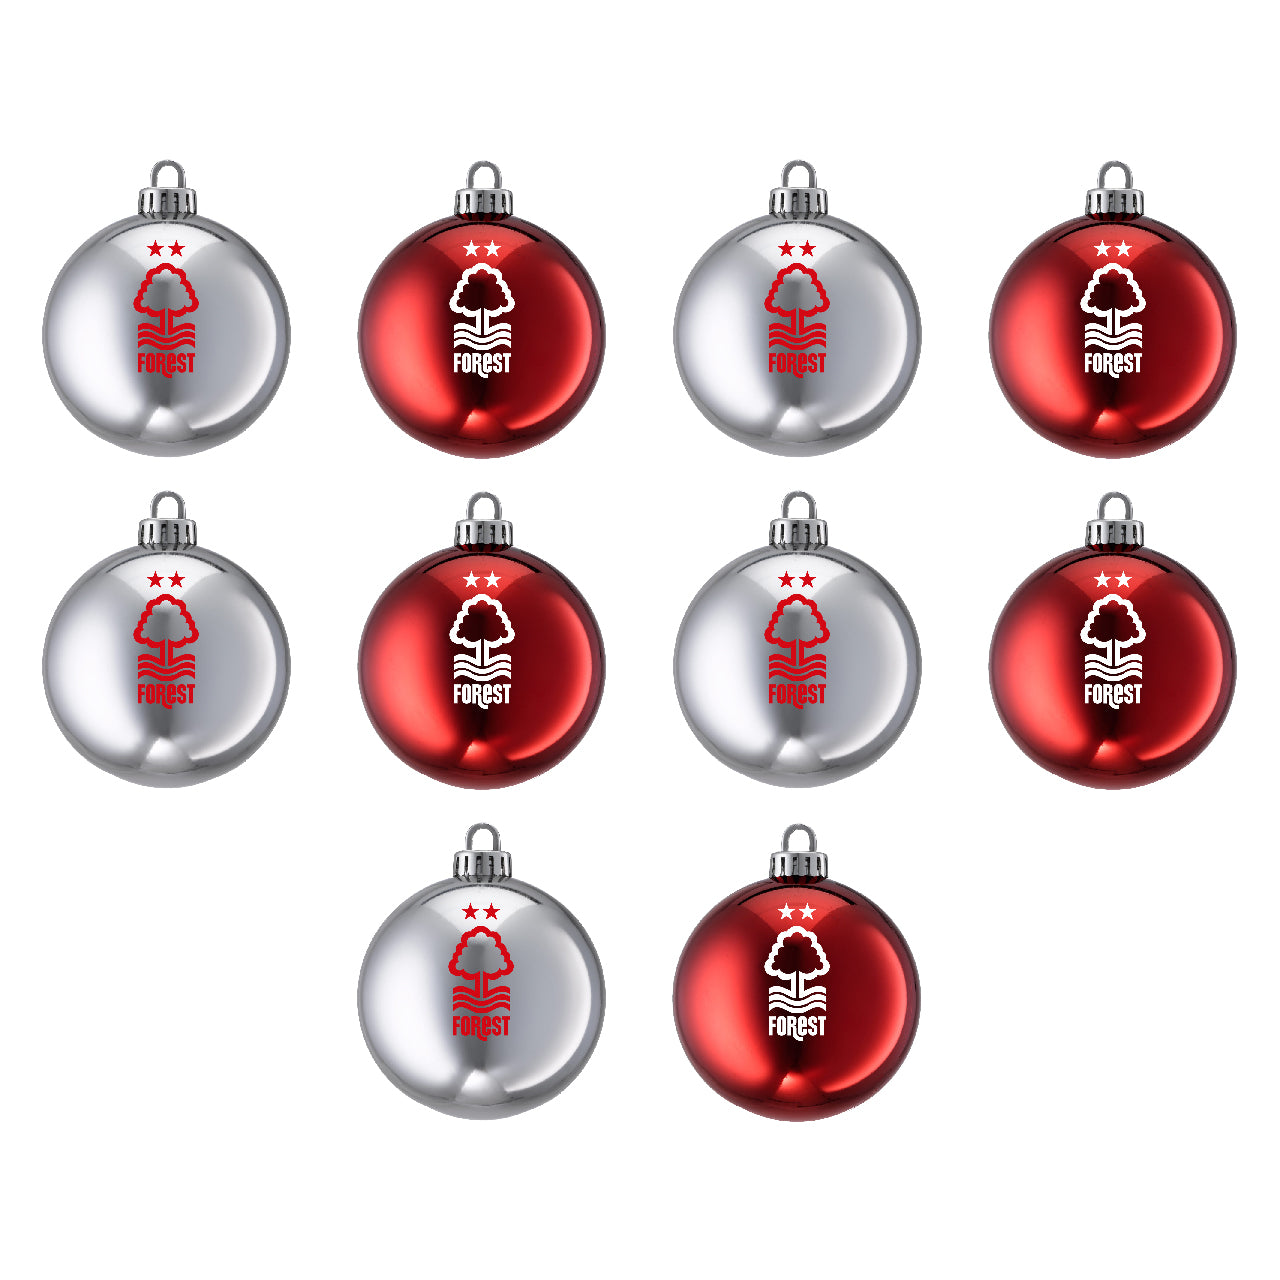 NFFC 10 Pack Mini 3cm Baubles